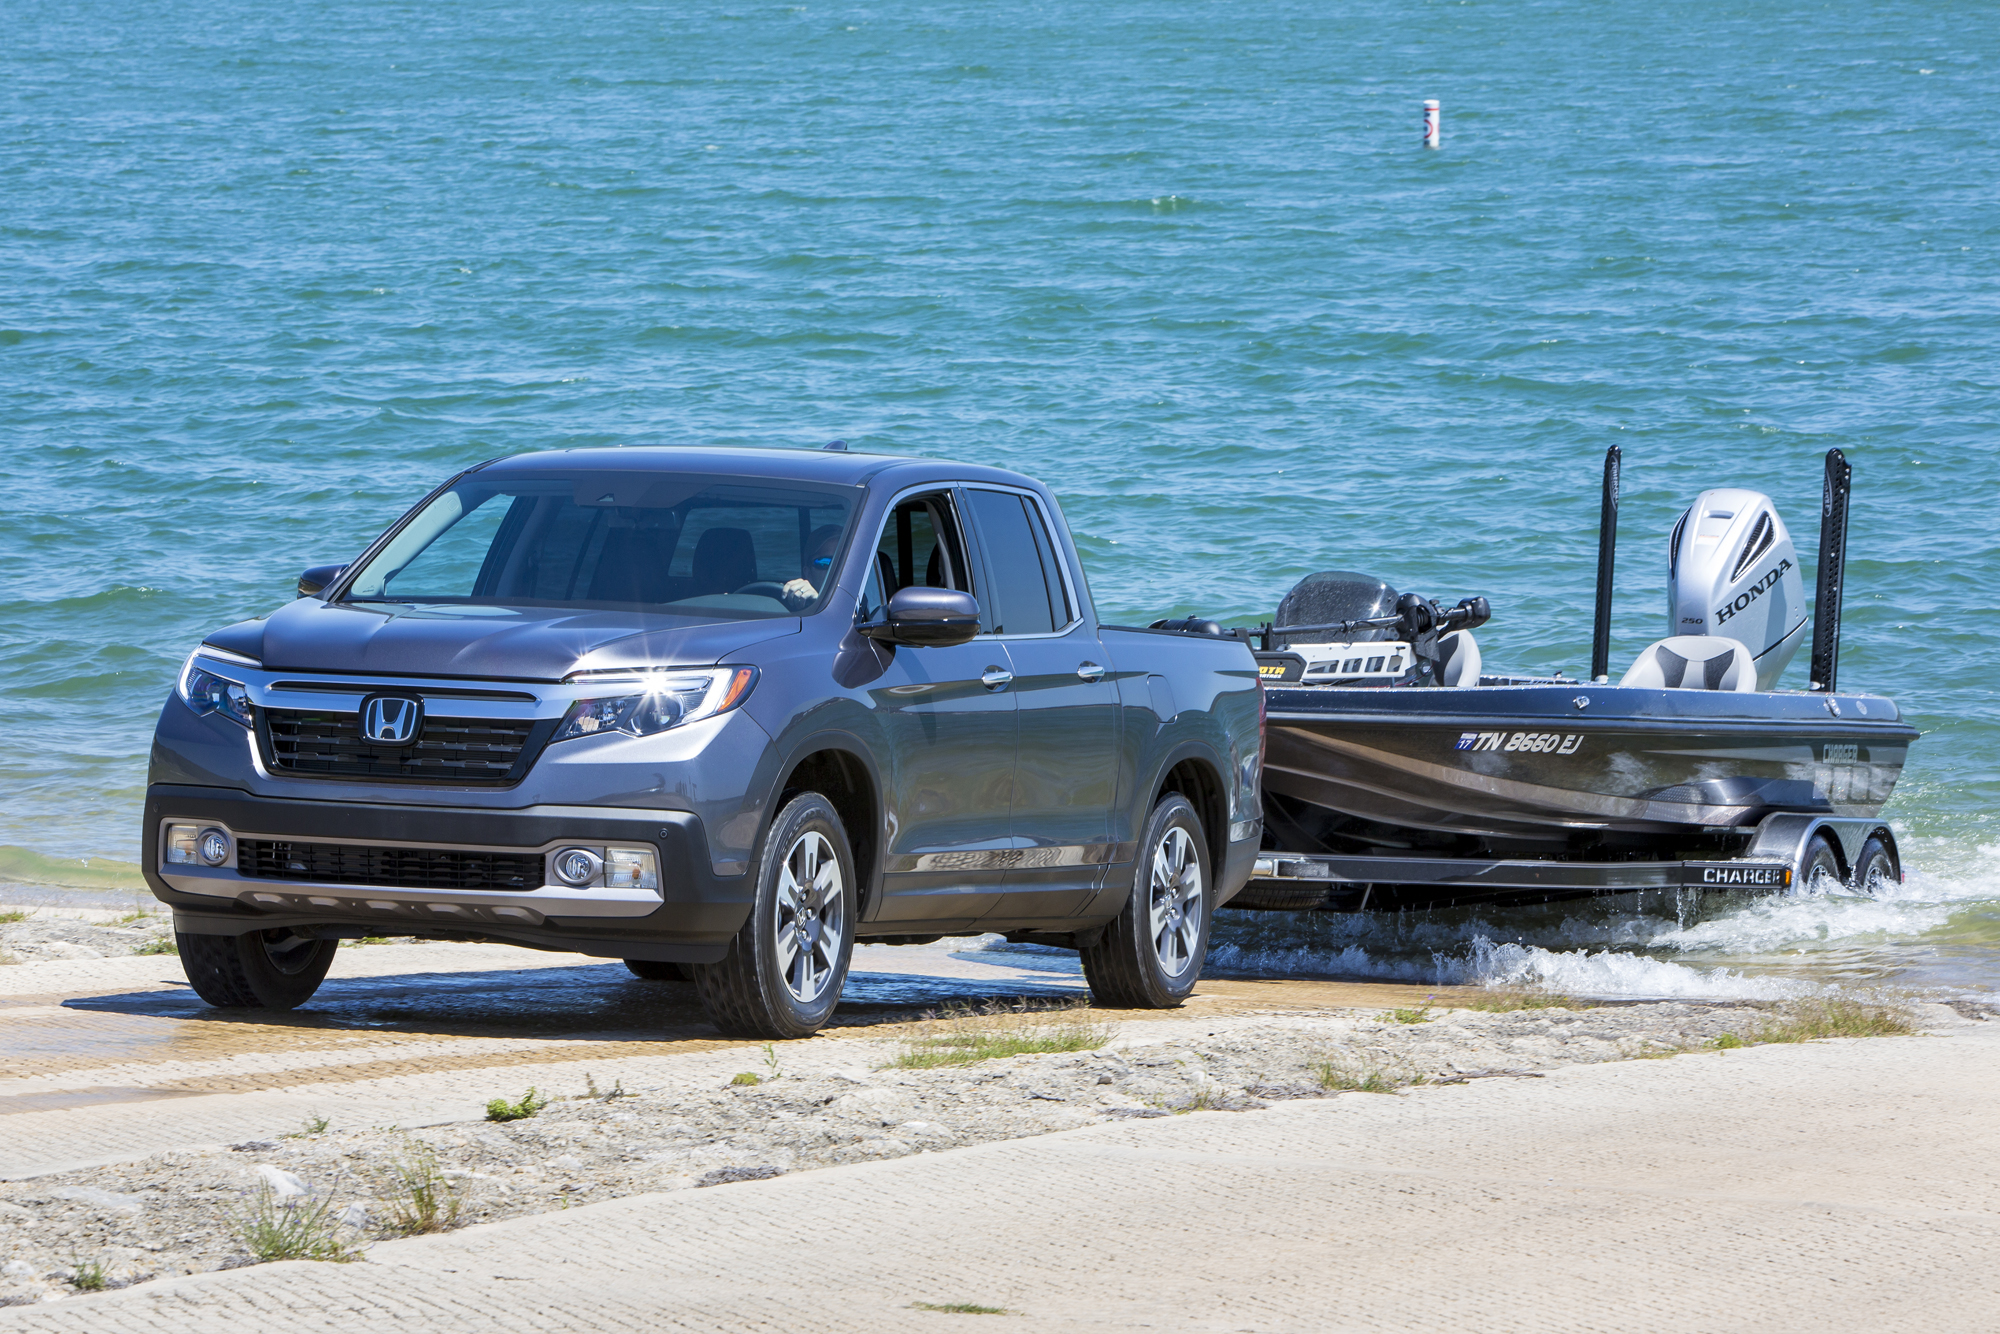 Back for 2017, Honda Ridgeline earns top safety ratings